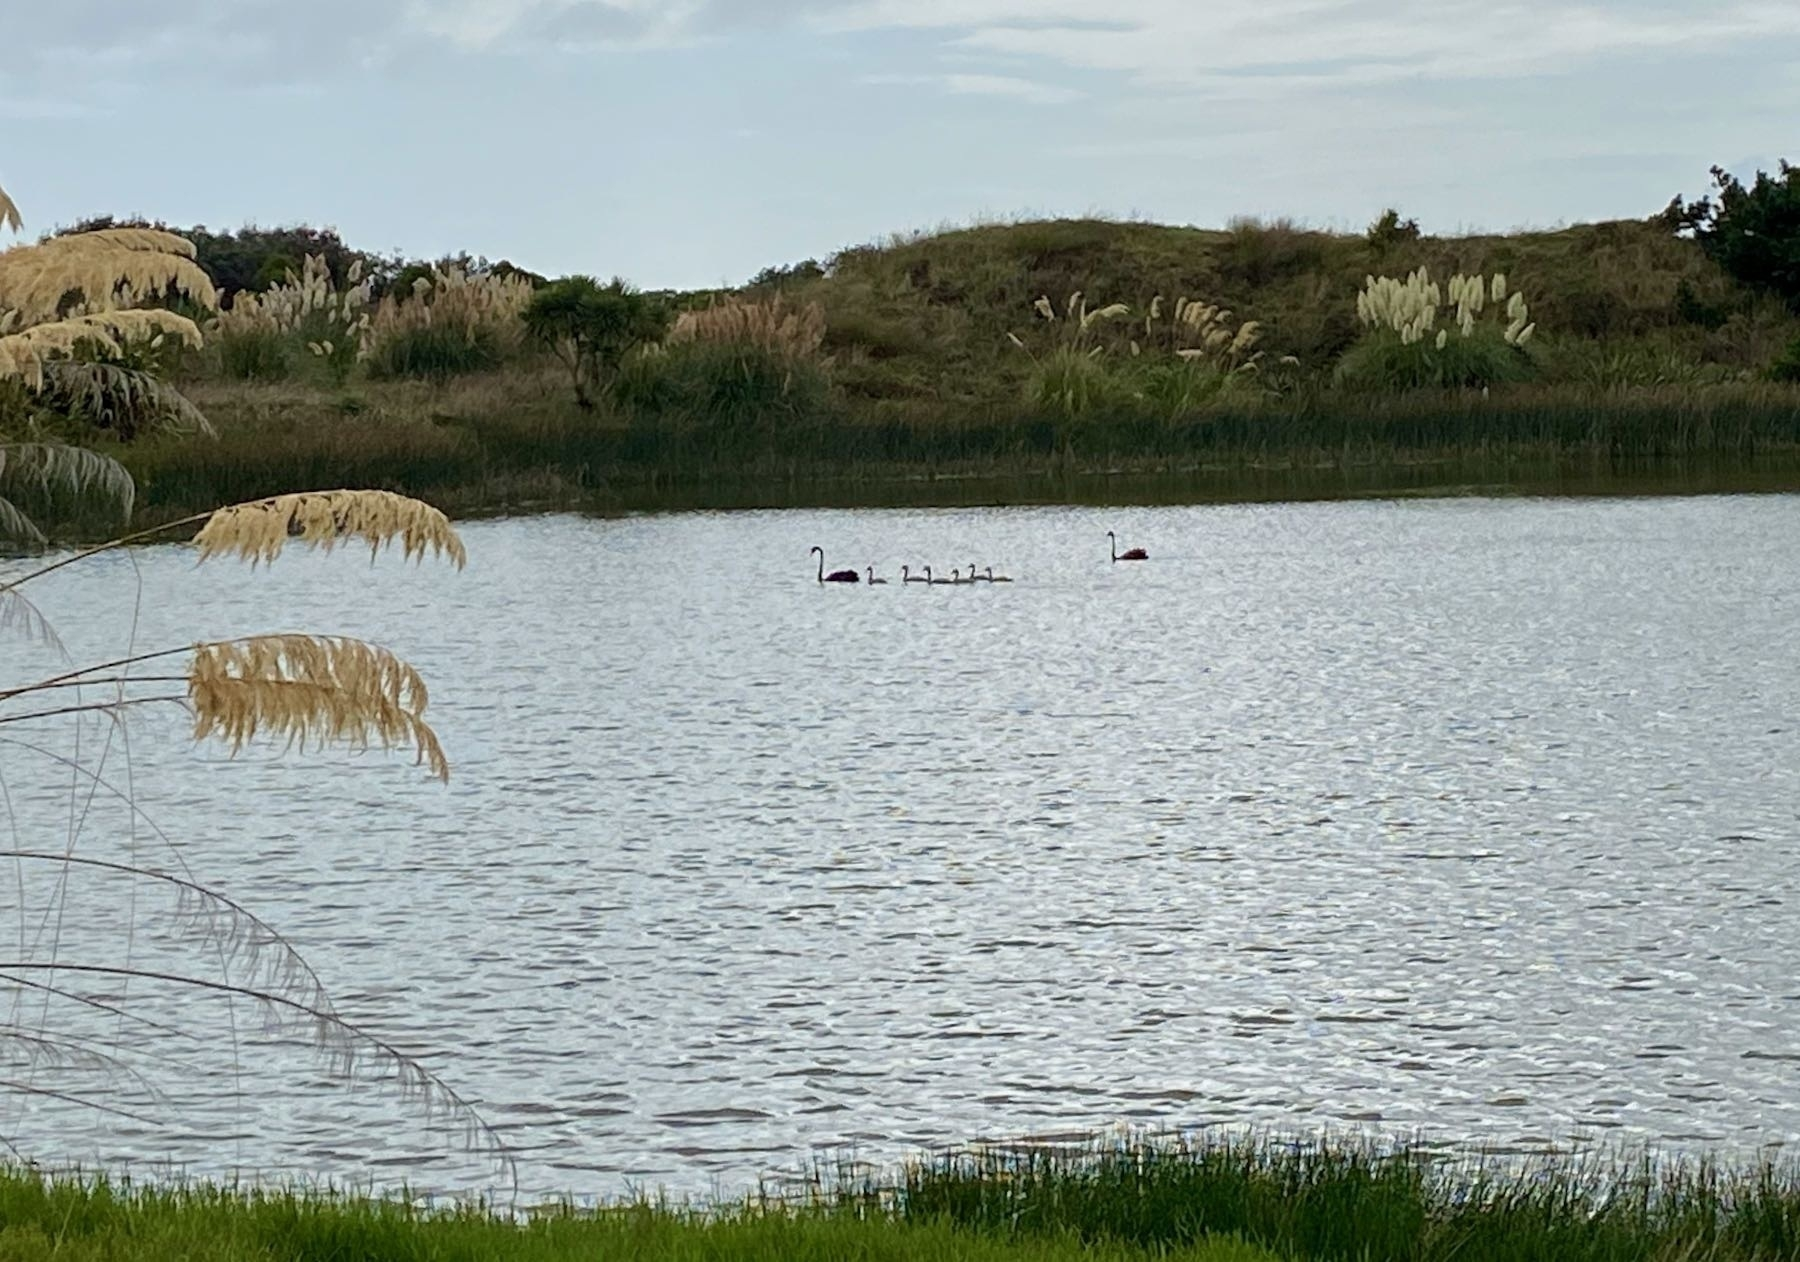 Two black swans and 6 cygnets on the lake.